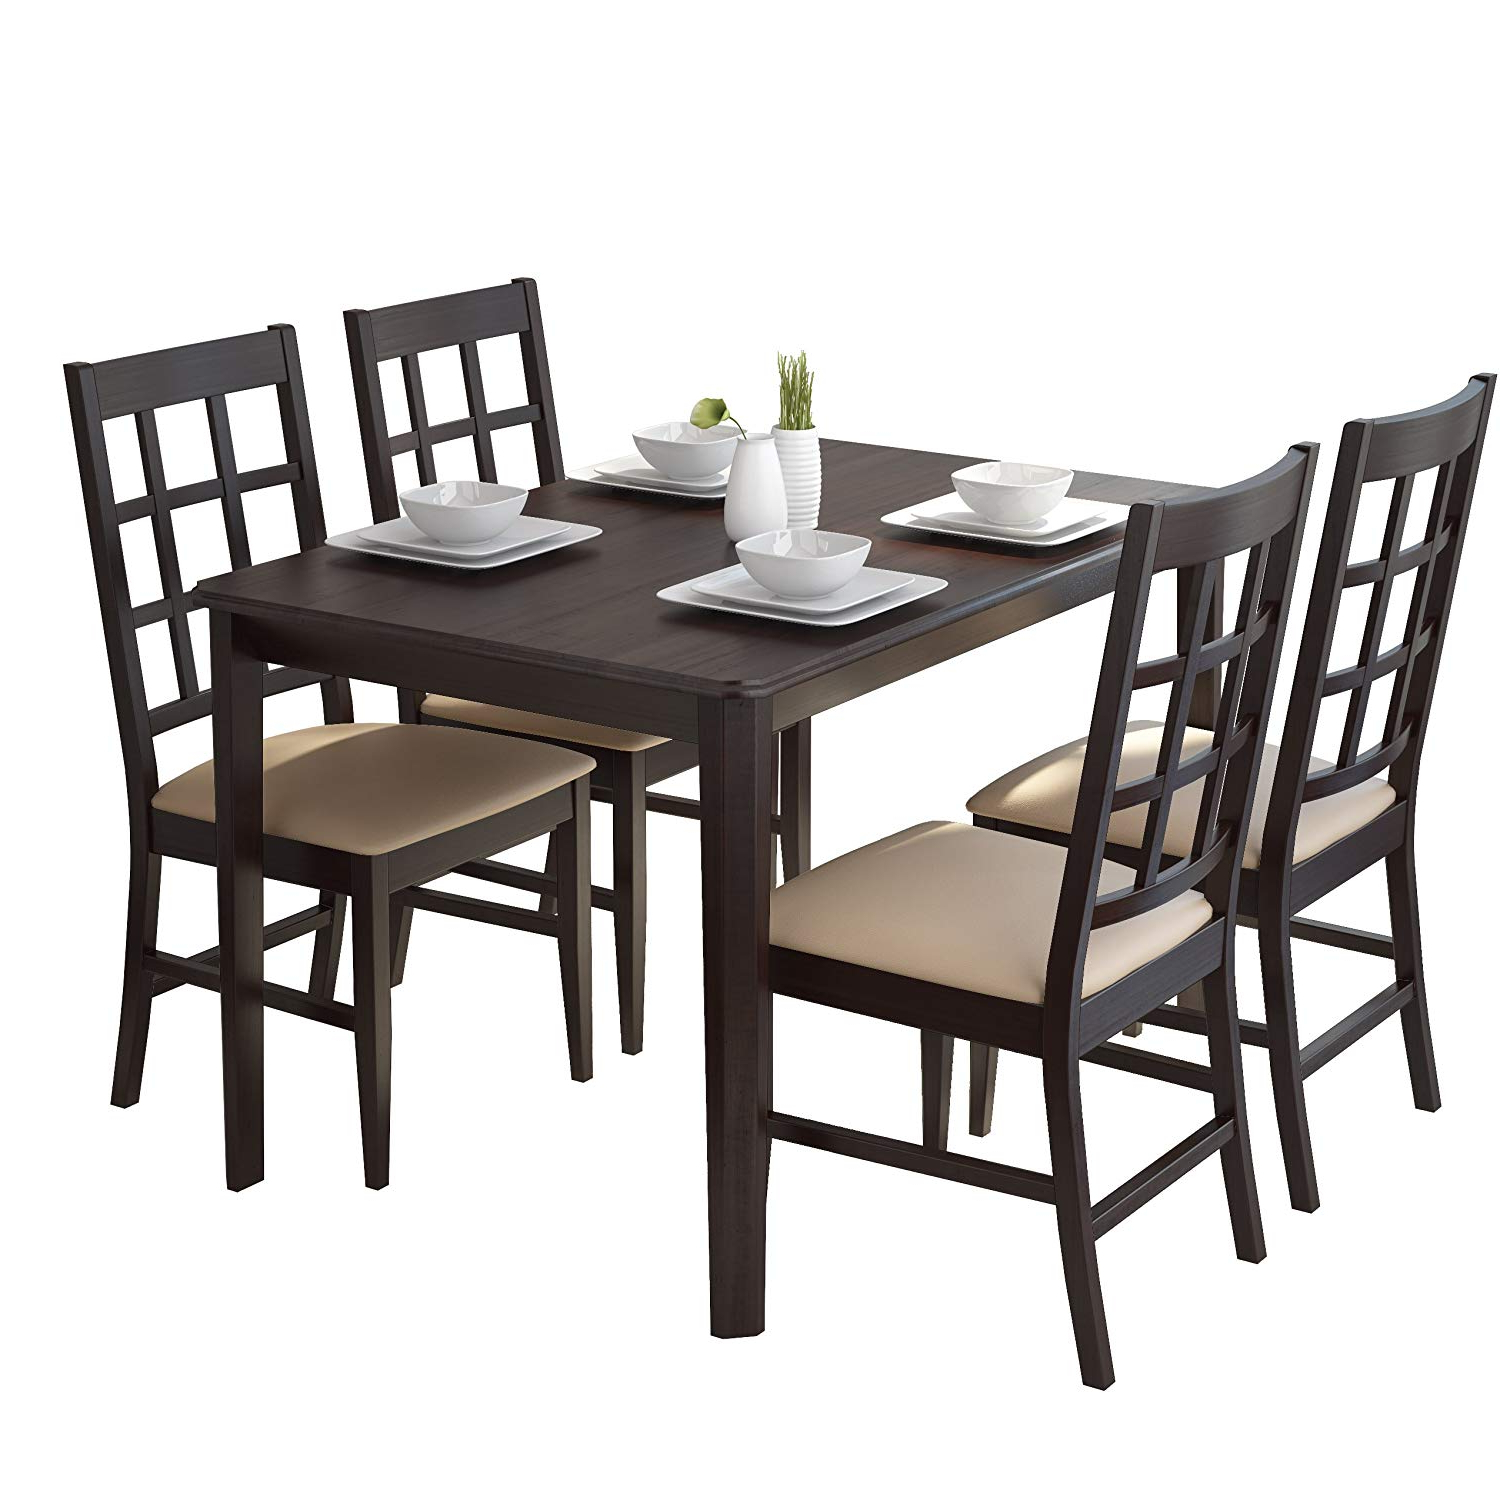 Atwood Transitional Rectangular Dining Tables Pertaining To 2017 Amazon – Corliving Drg 695 Z Atwood Dining Set, Brown (View 8 of 30)